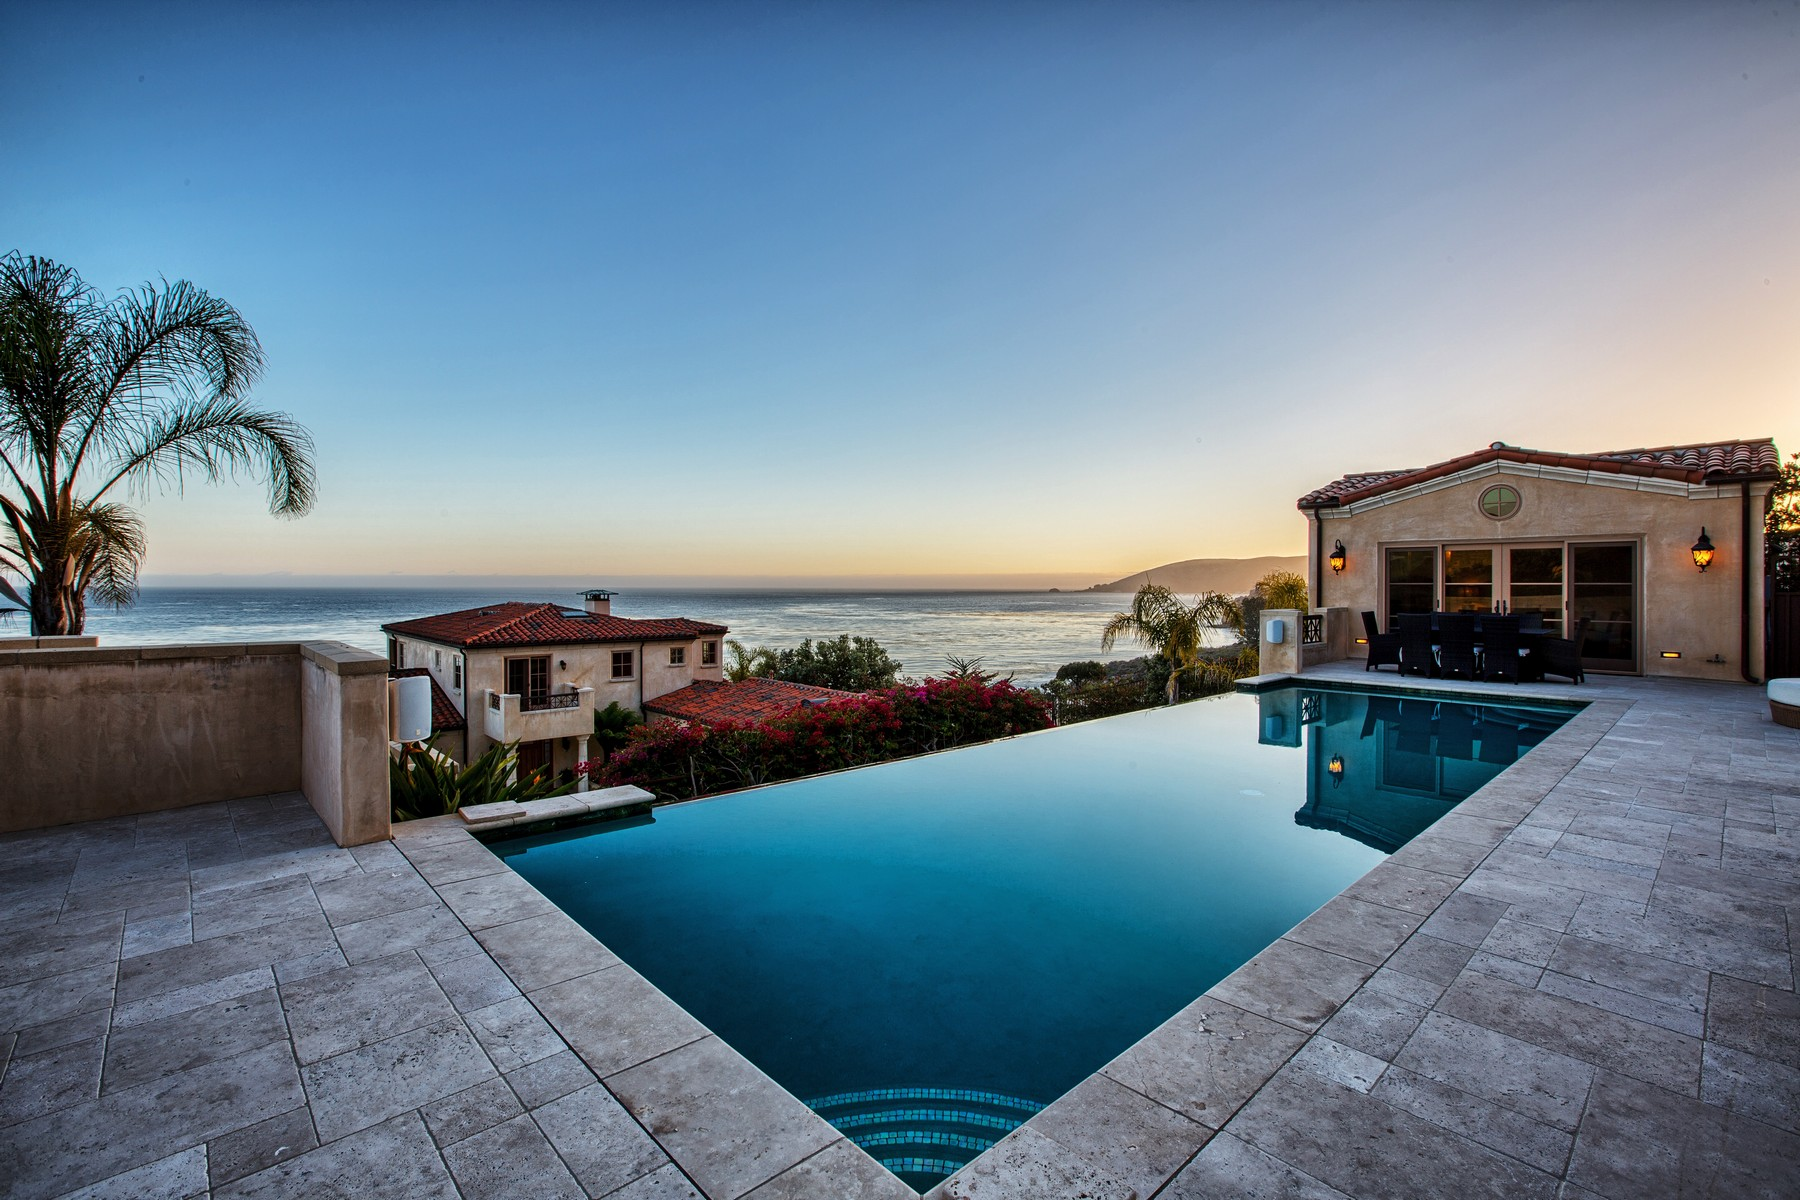 Single Family Home for Sale at Gated Oceanfront Estate 42 Bluff Drive Pismo Beach, California, 93449 United States